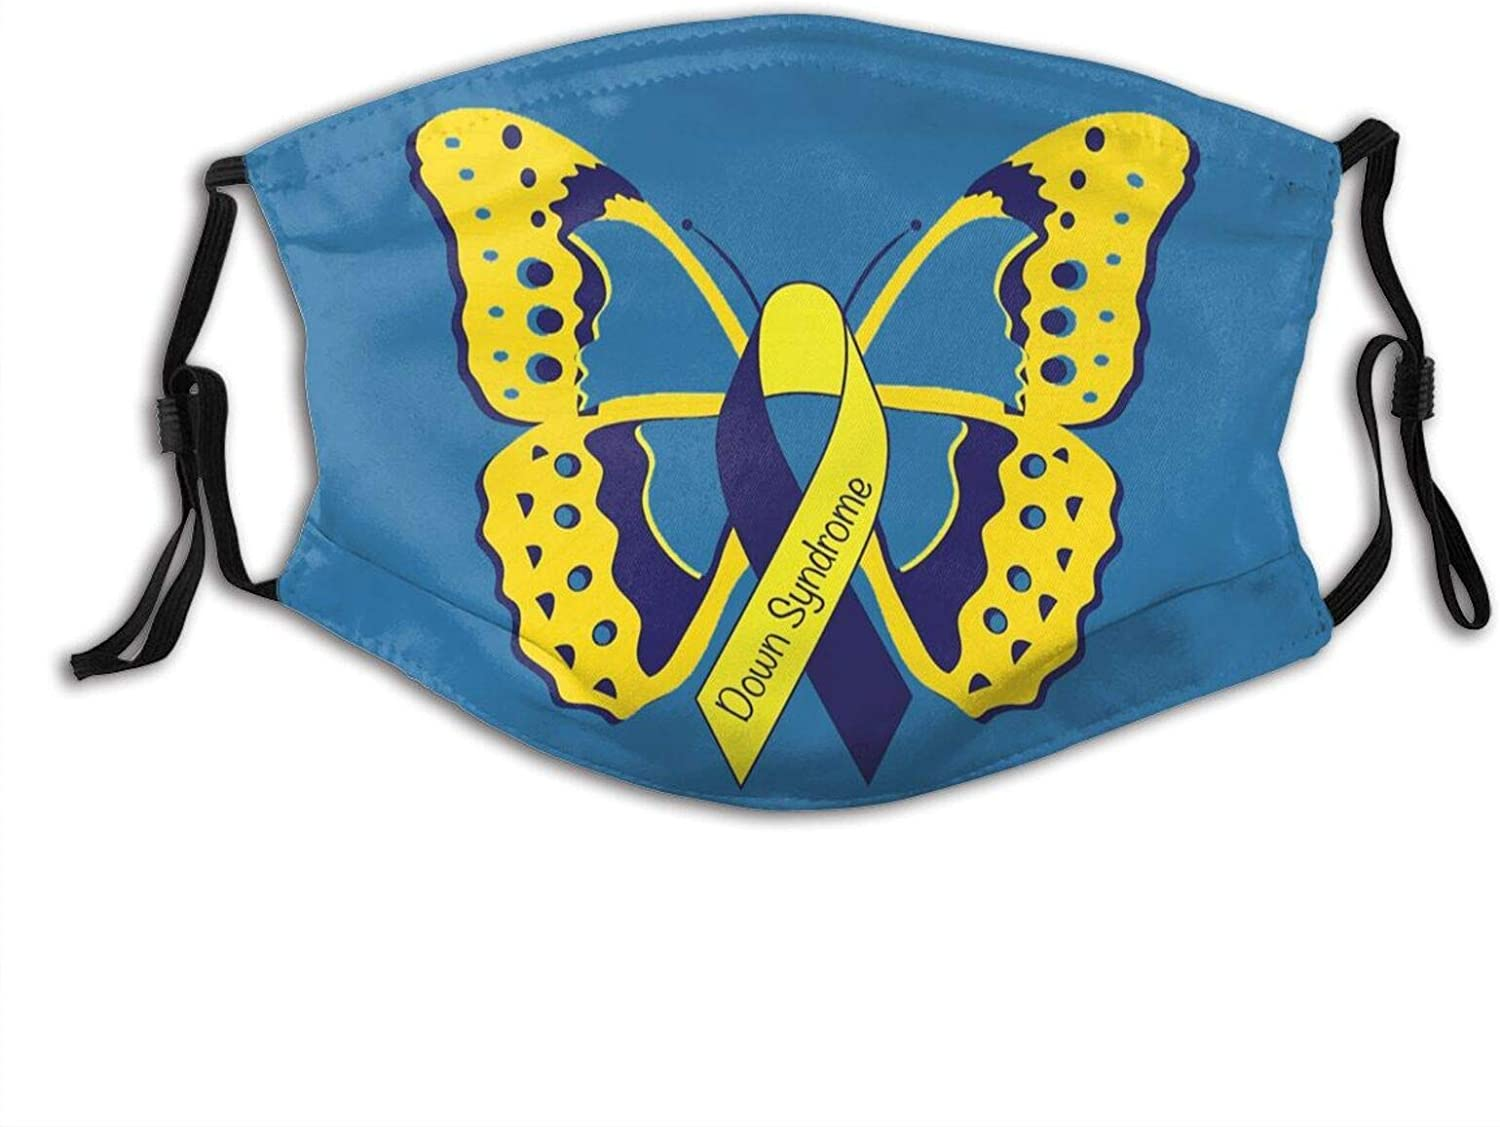 down Syndrome Day Personas Face Mask Decorative Masks Balaclava Bandana Cloth -World Down Syndrome Day Awareness Butterfly 2-Christmas masks Christmas face masks for adults Thanksgiving face mask